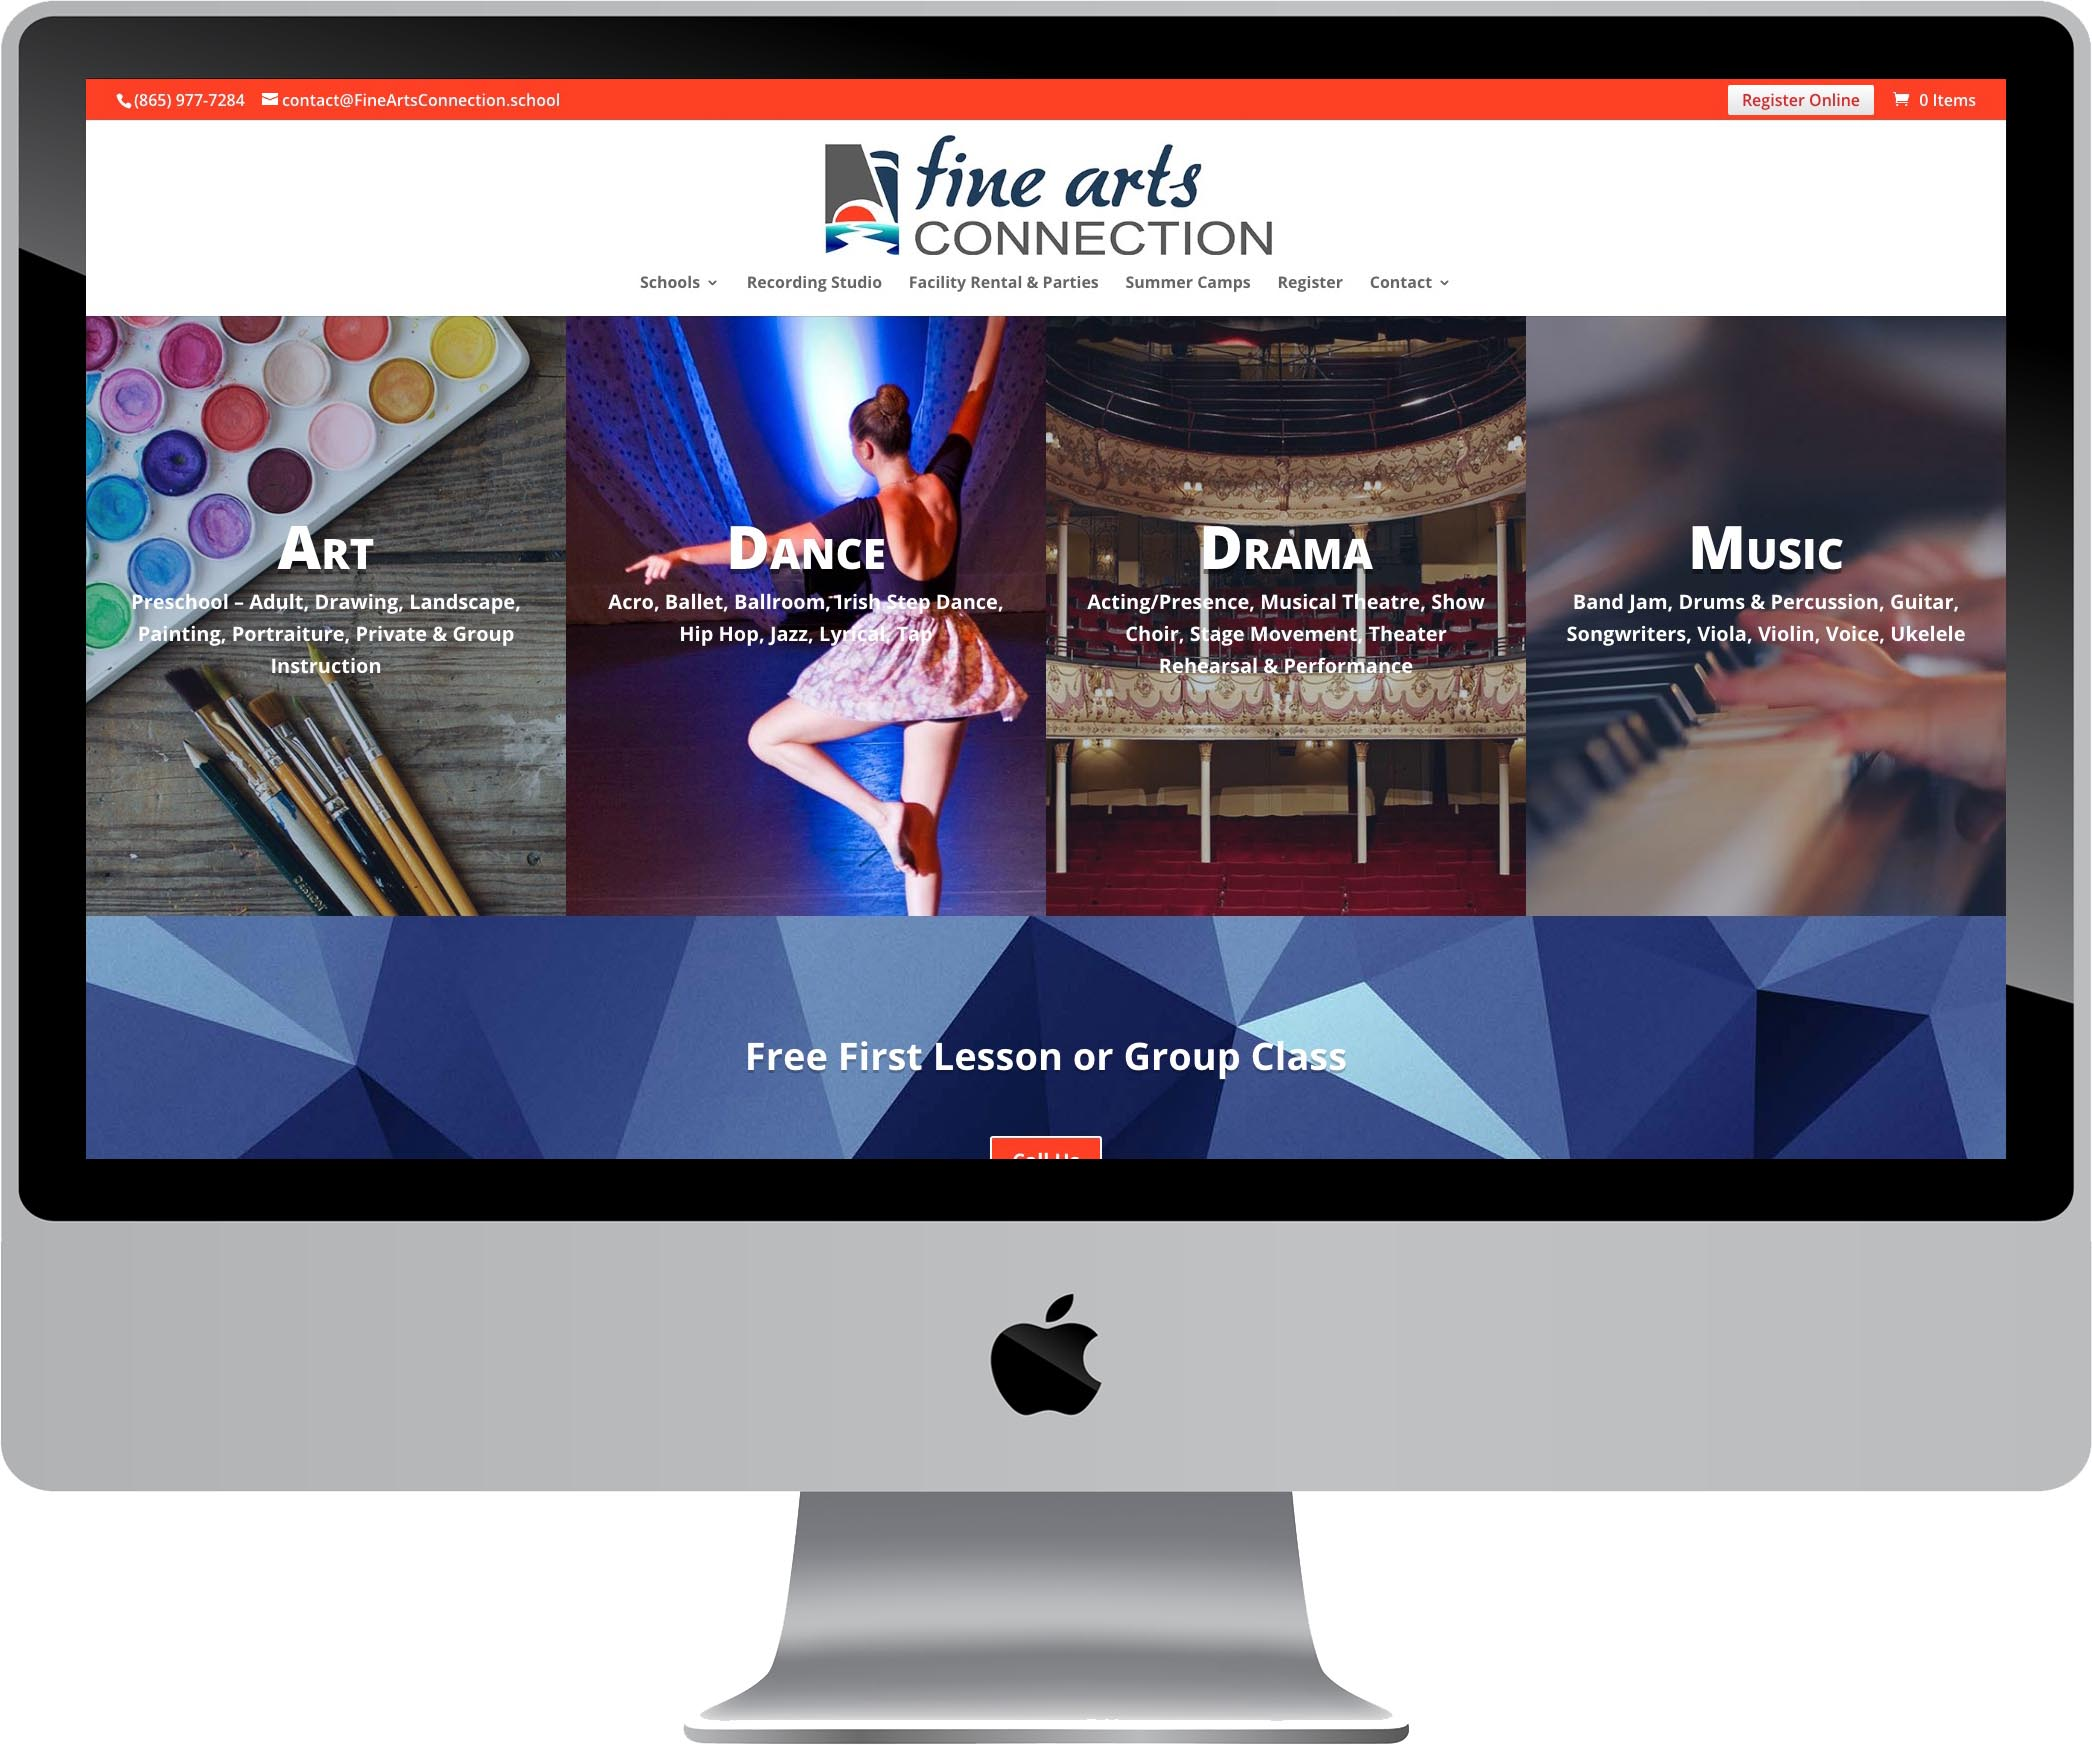 Fine Arts Connection Website Design